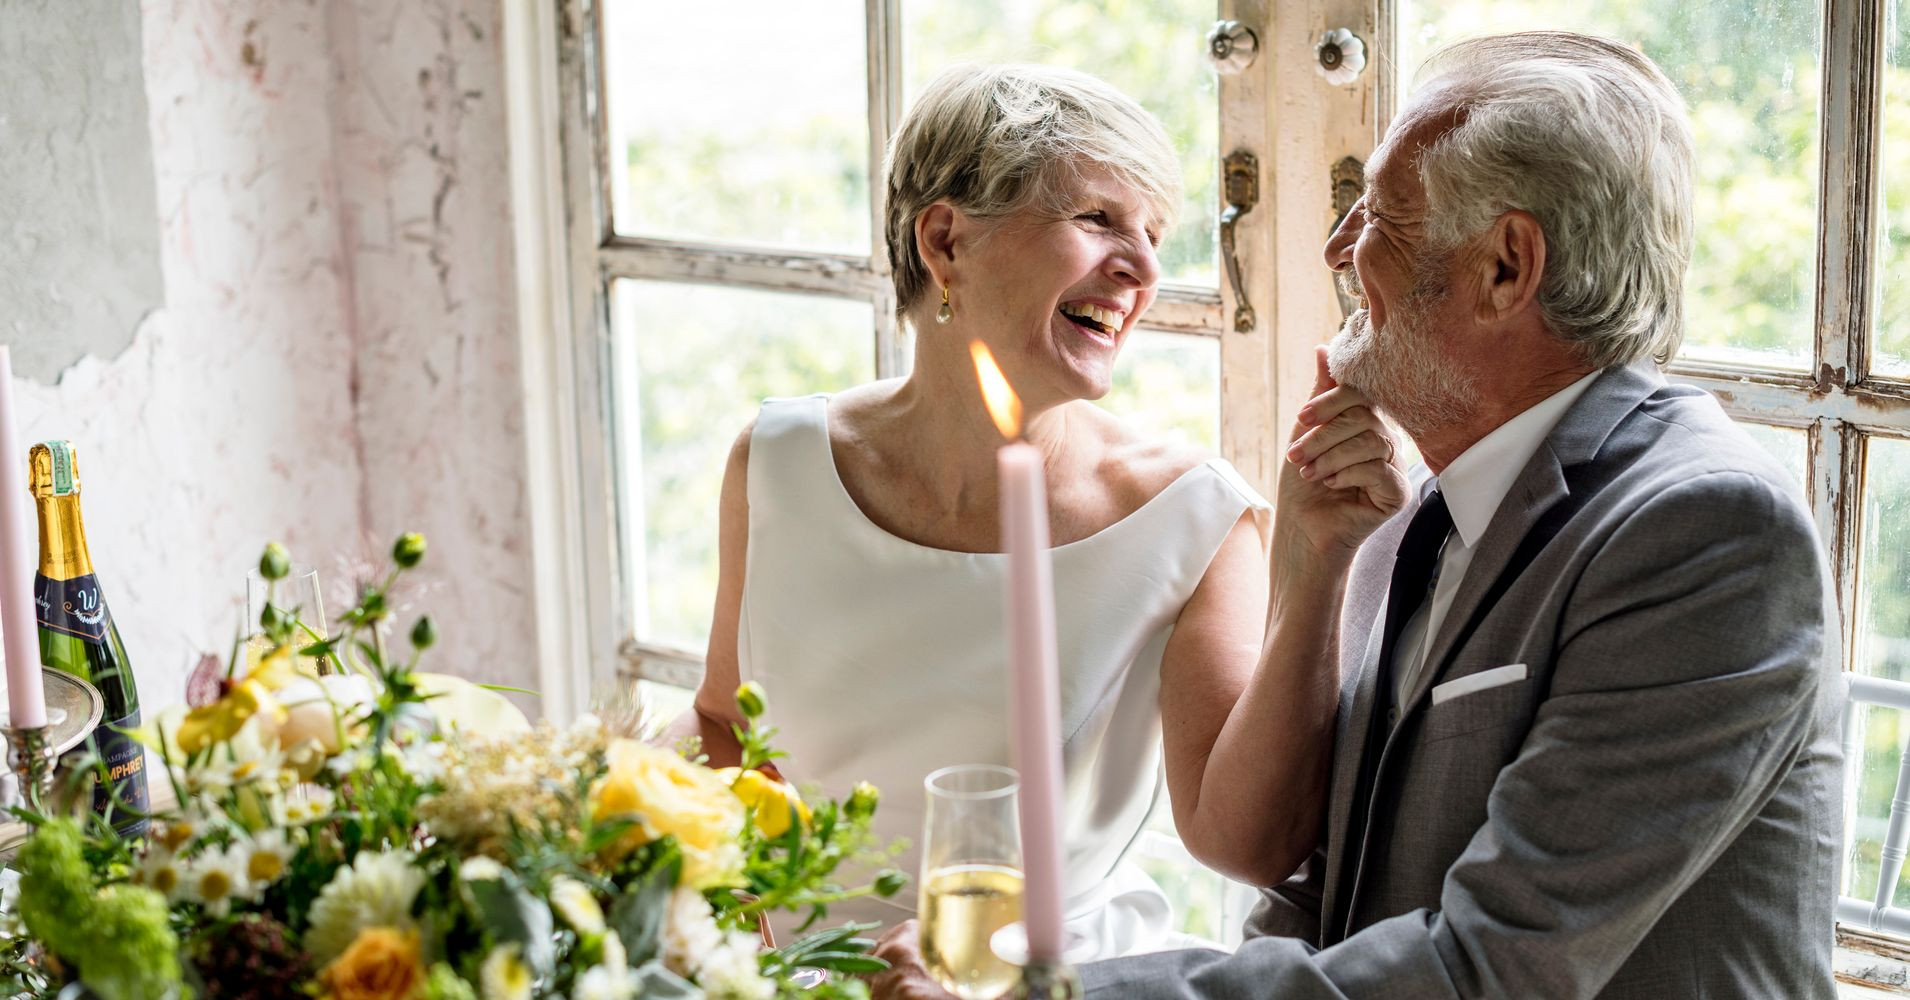 Gift Ideas For Older Couples  27 Wedding Gifts For Older Couples Marrying The Second